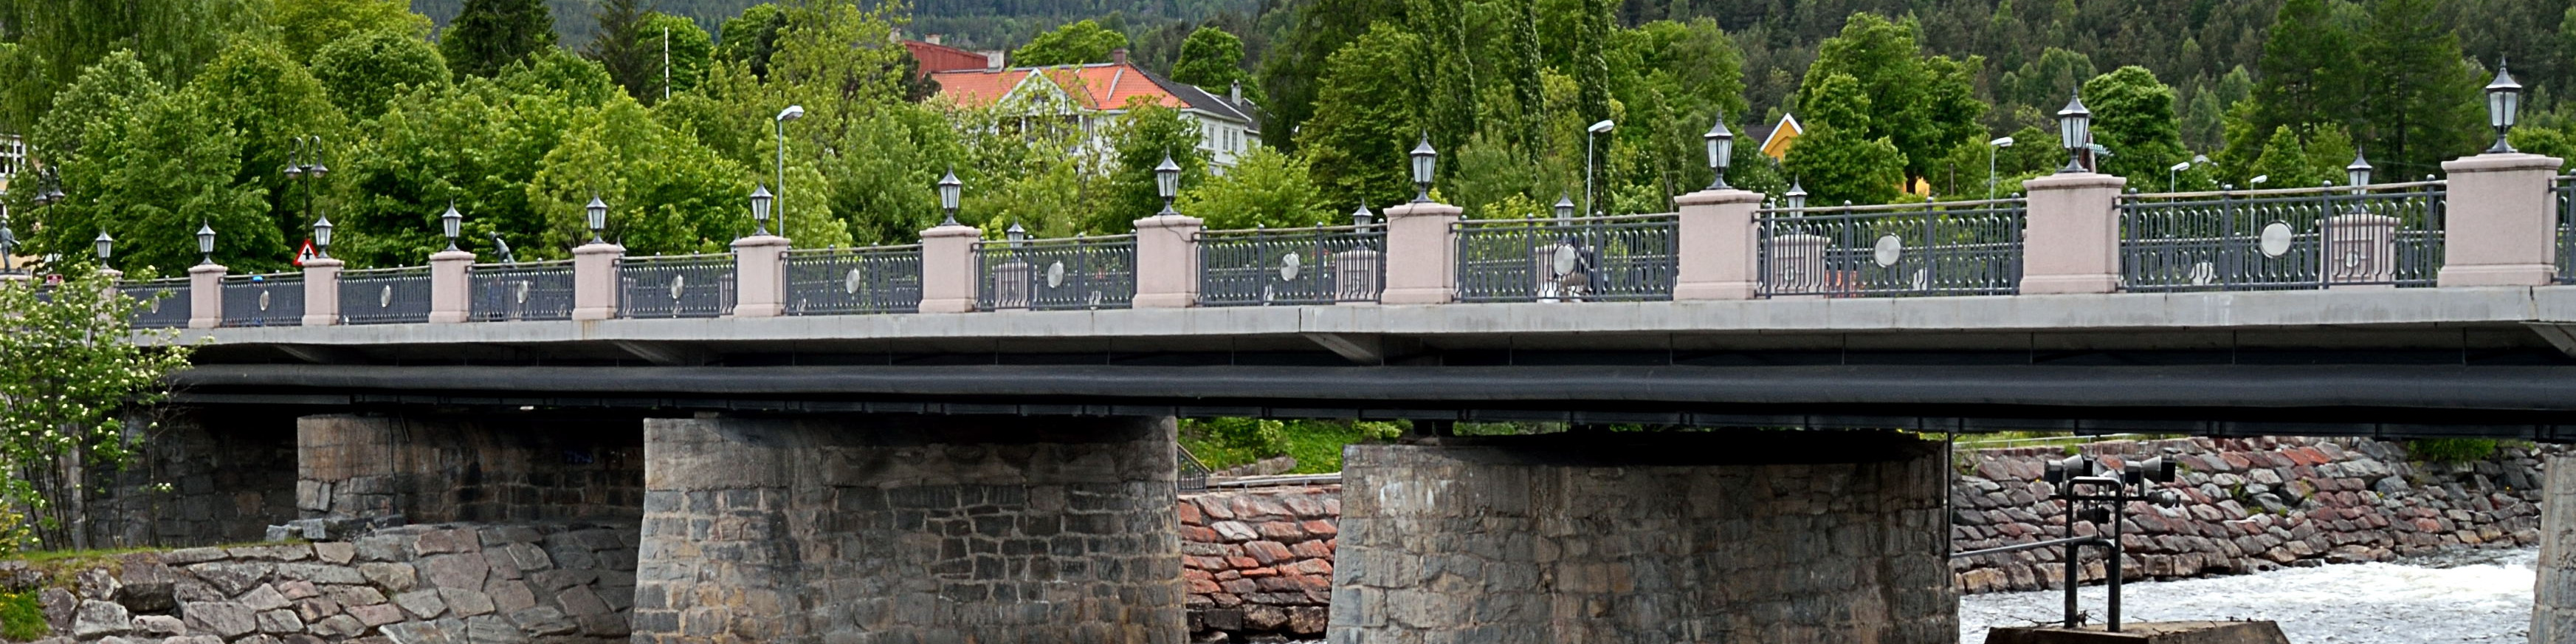 Bridge crossing Lågen in Kongsberg